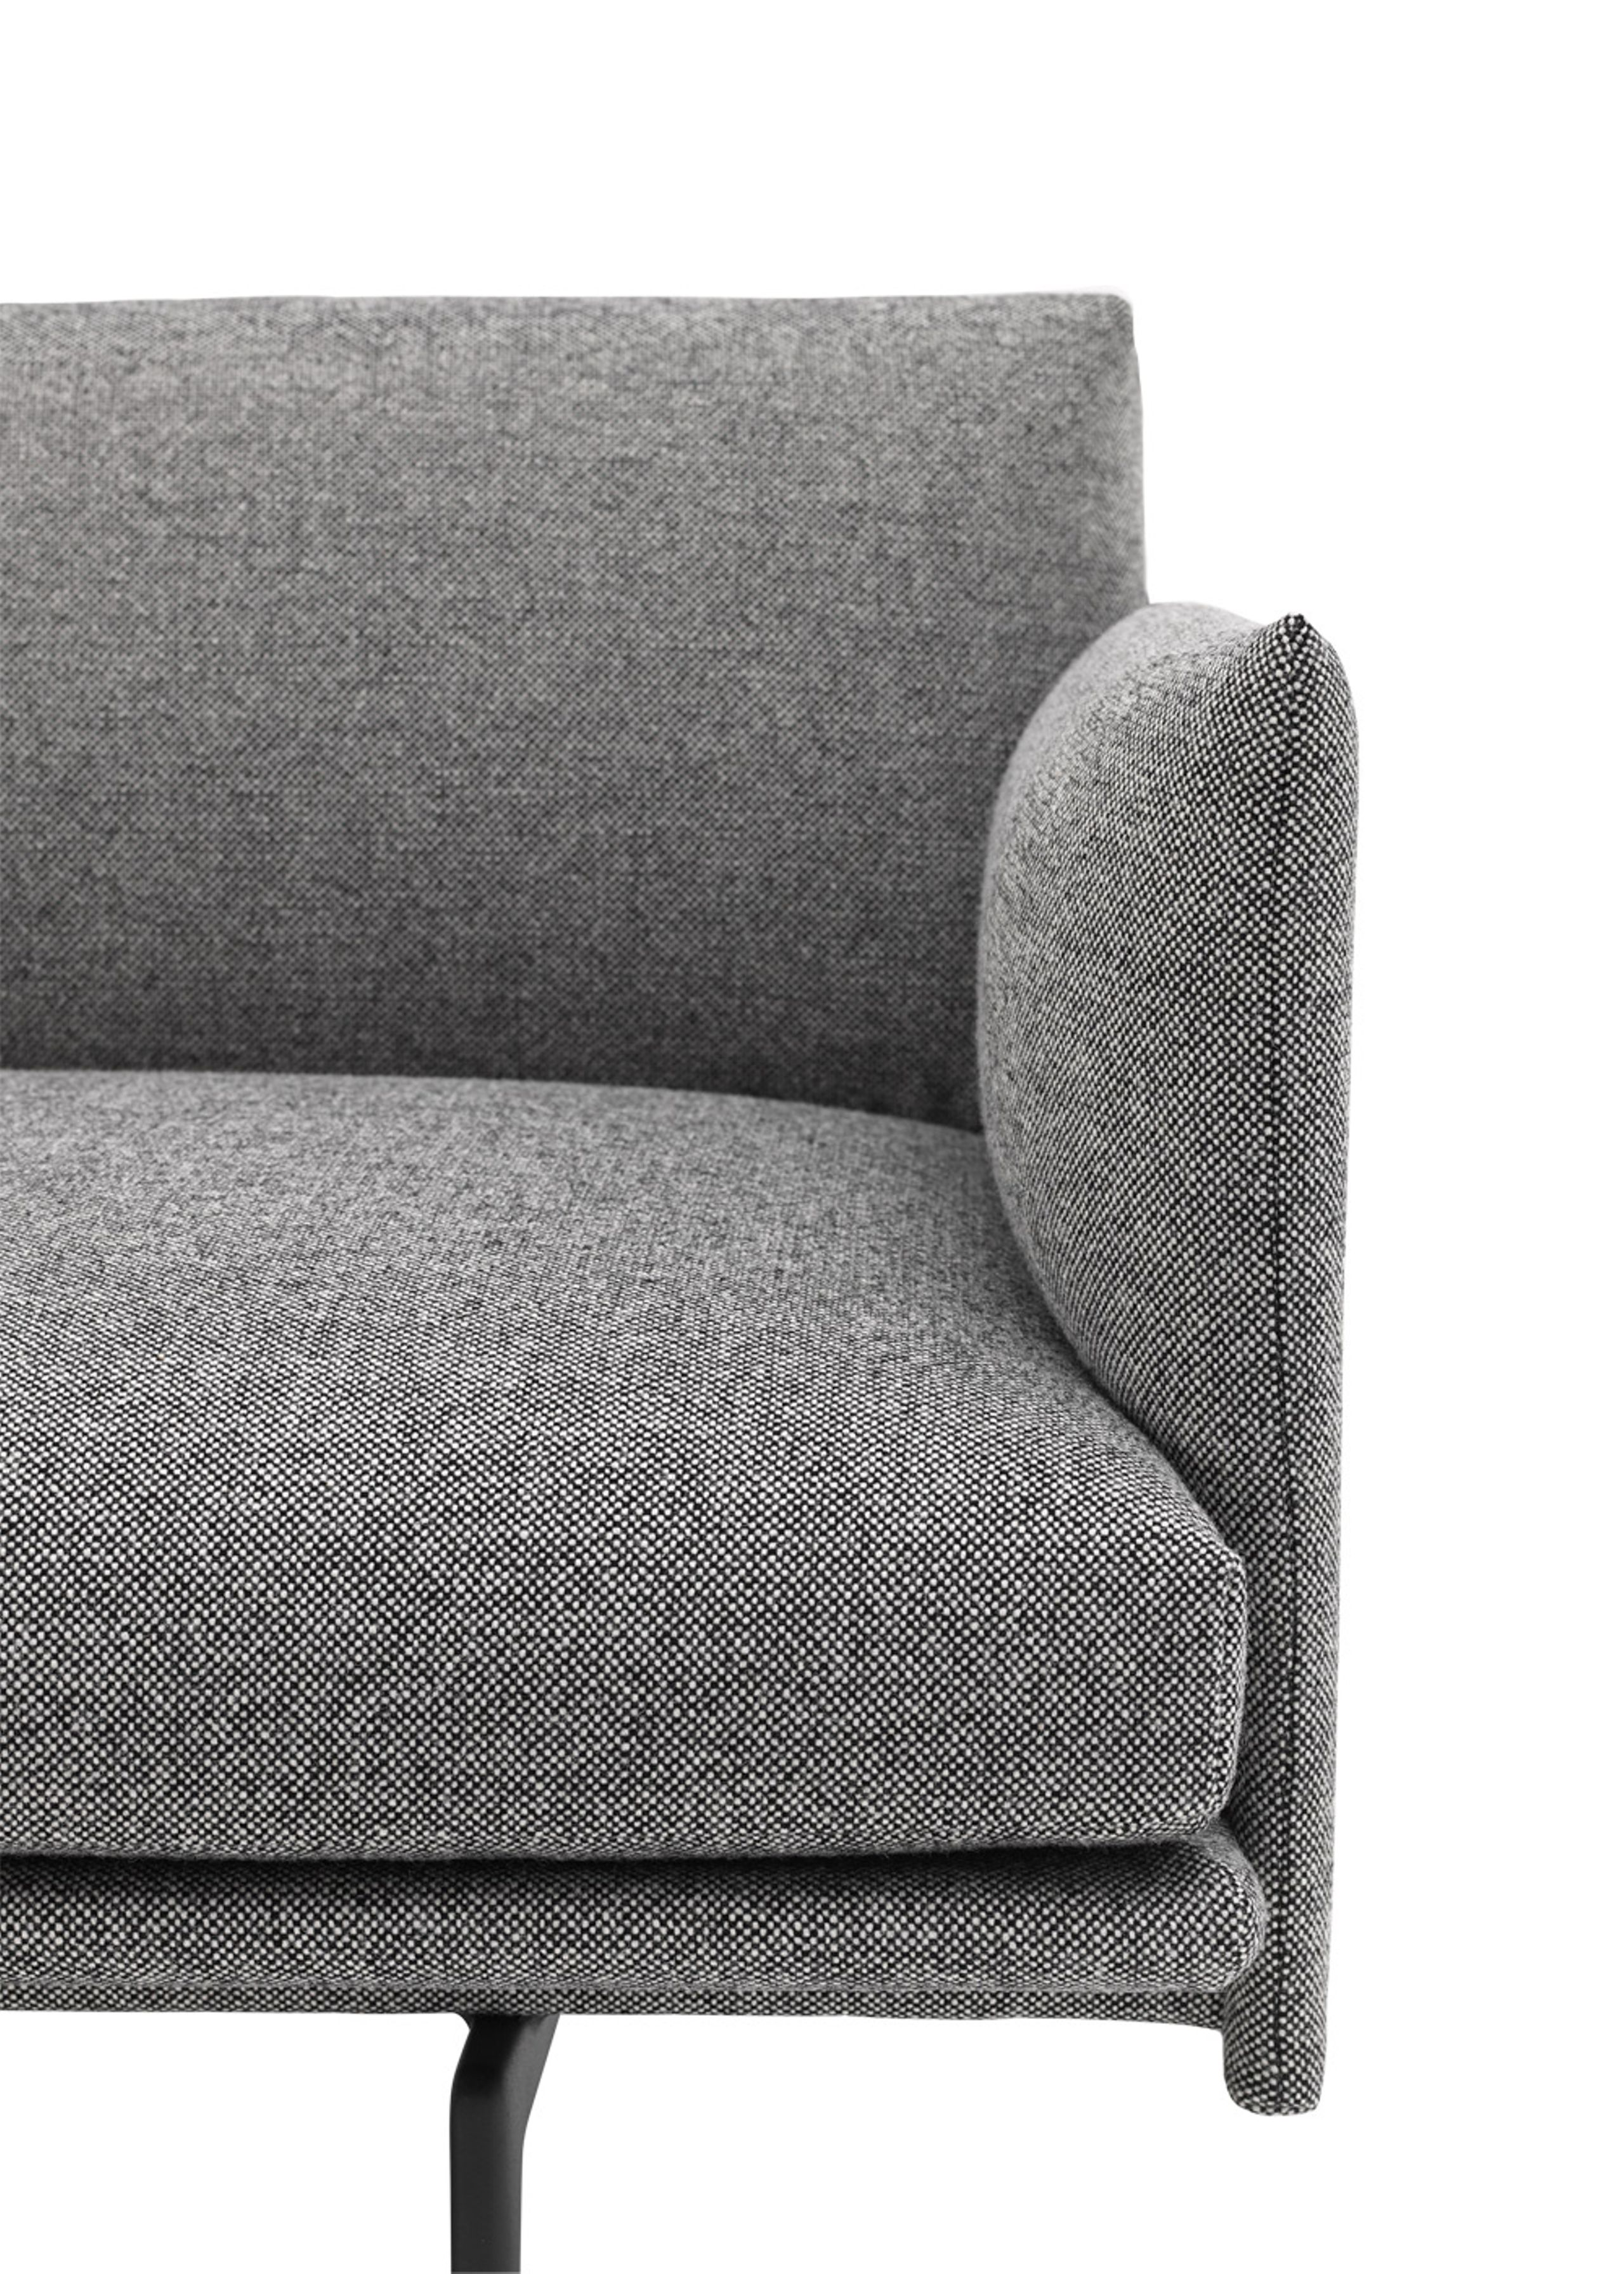 Outline Sofa 3 1 2 Seater Couch Muuto